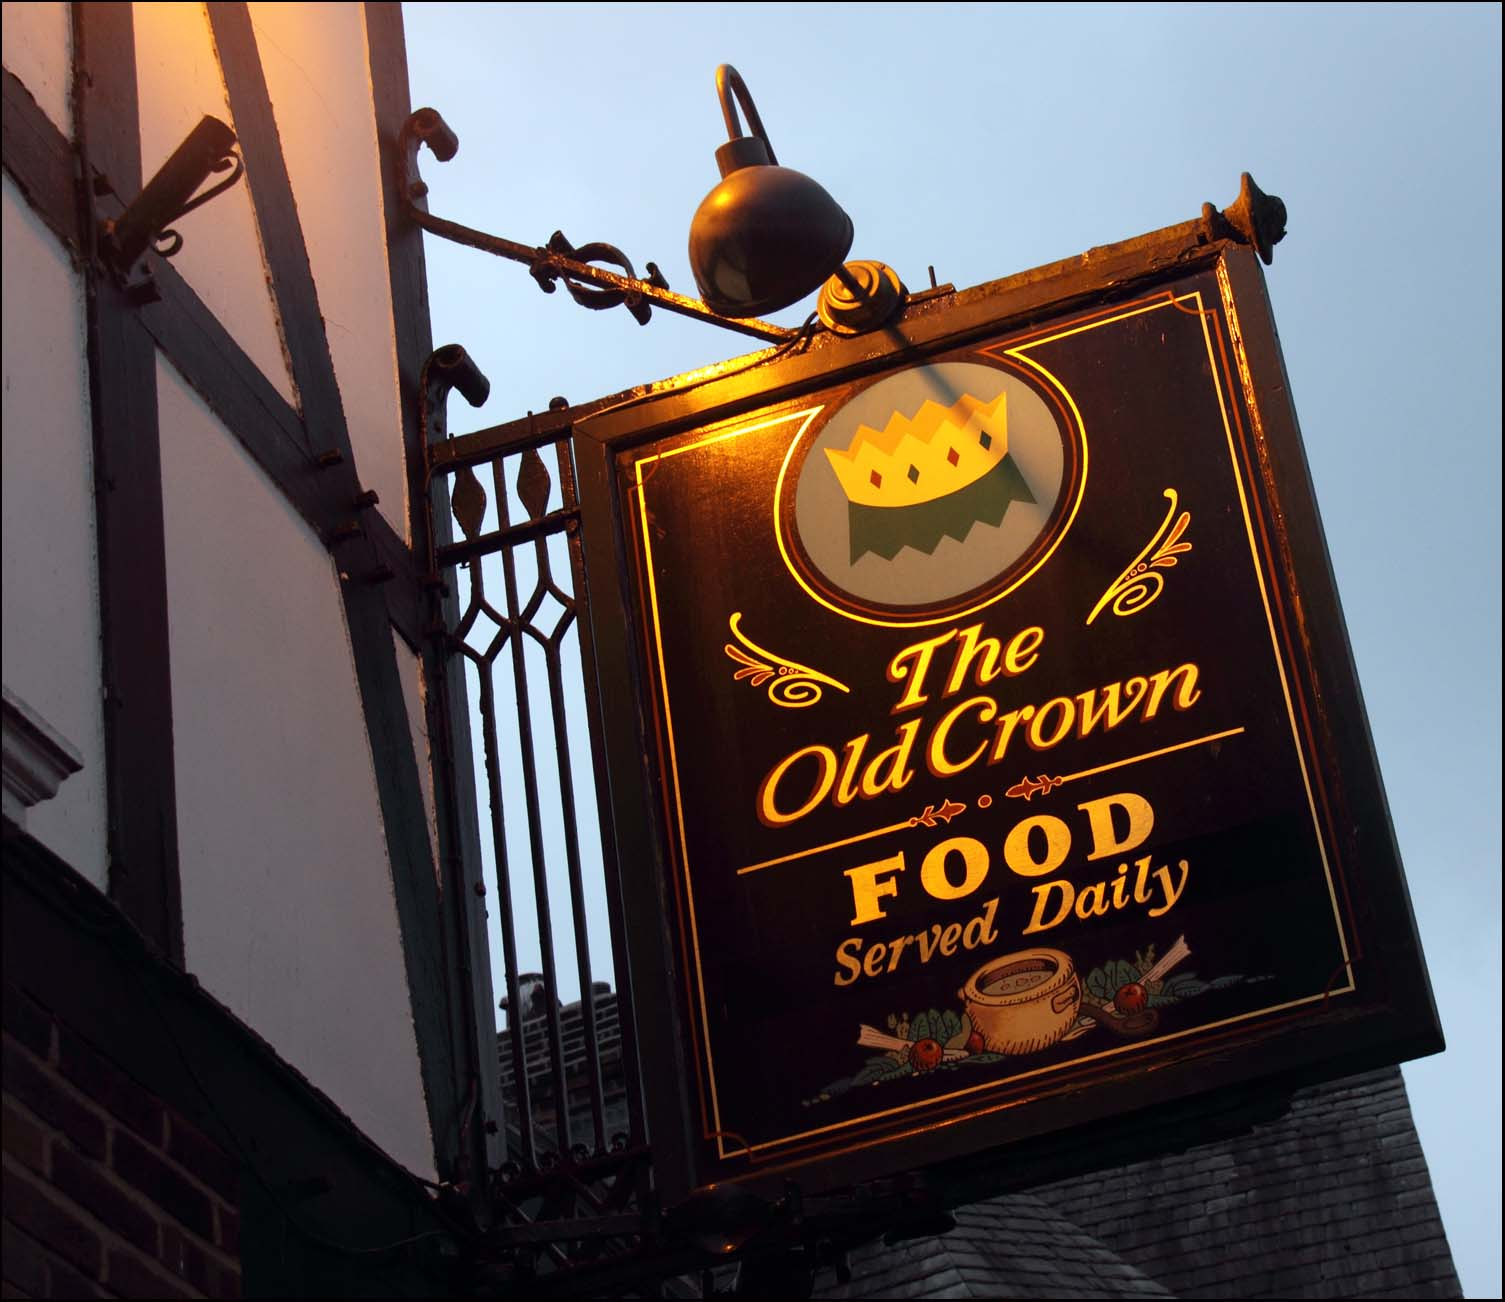 old,crown,pub,inn,public,house,street,Northwich,Cheshire,real,ale,keg,fizzy,lager,sticky,carpets,sign,closed,pubs,maxwells,maxwell,alehouse,old pub,old pubs,shut,CAMRA,UK,britain,great,England,main,shopping,365days,hotpix!